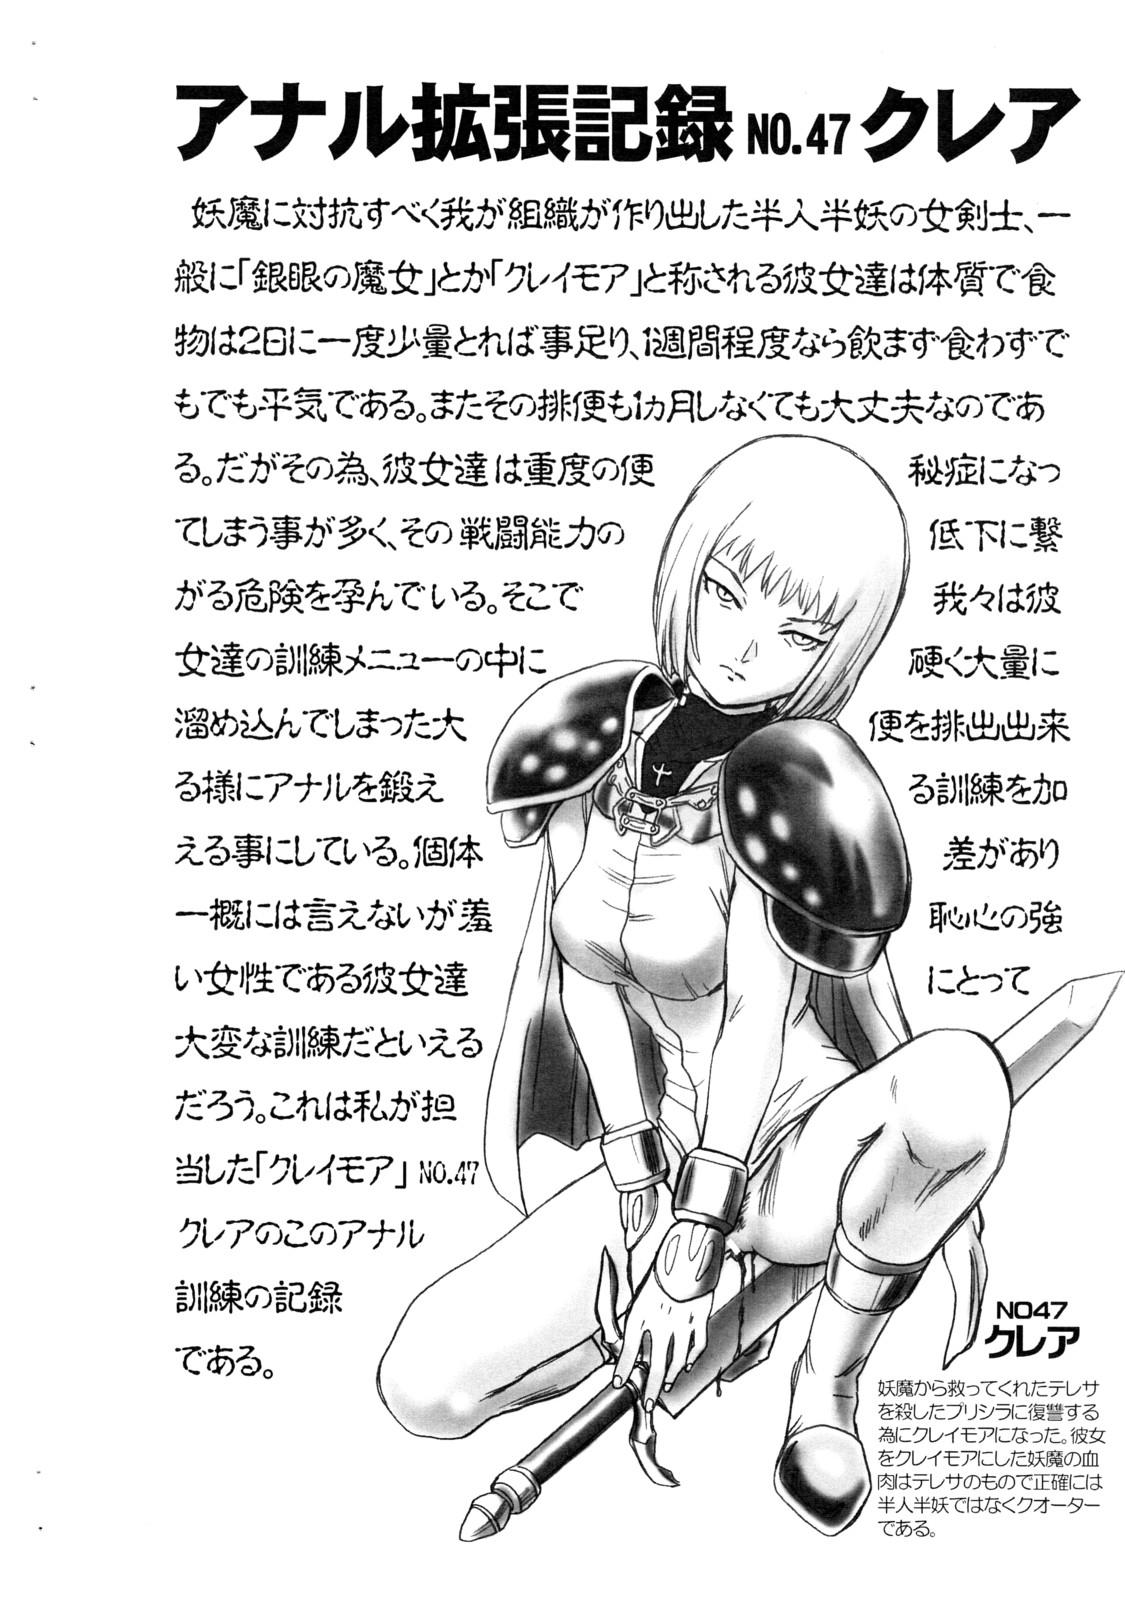 CLAYMORE FILE 1